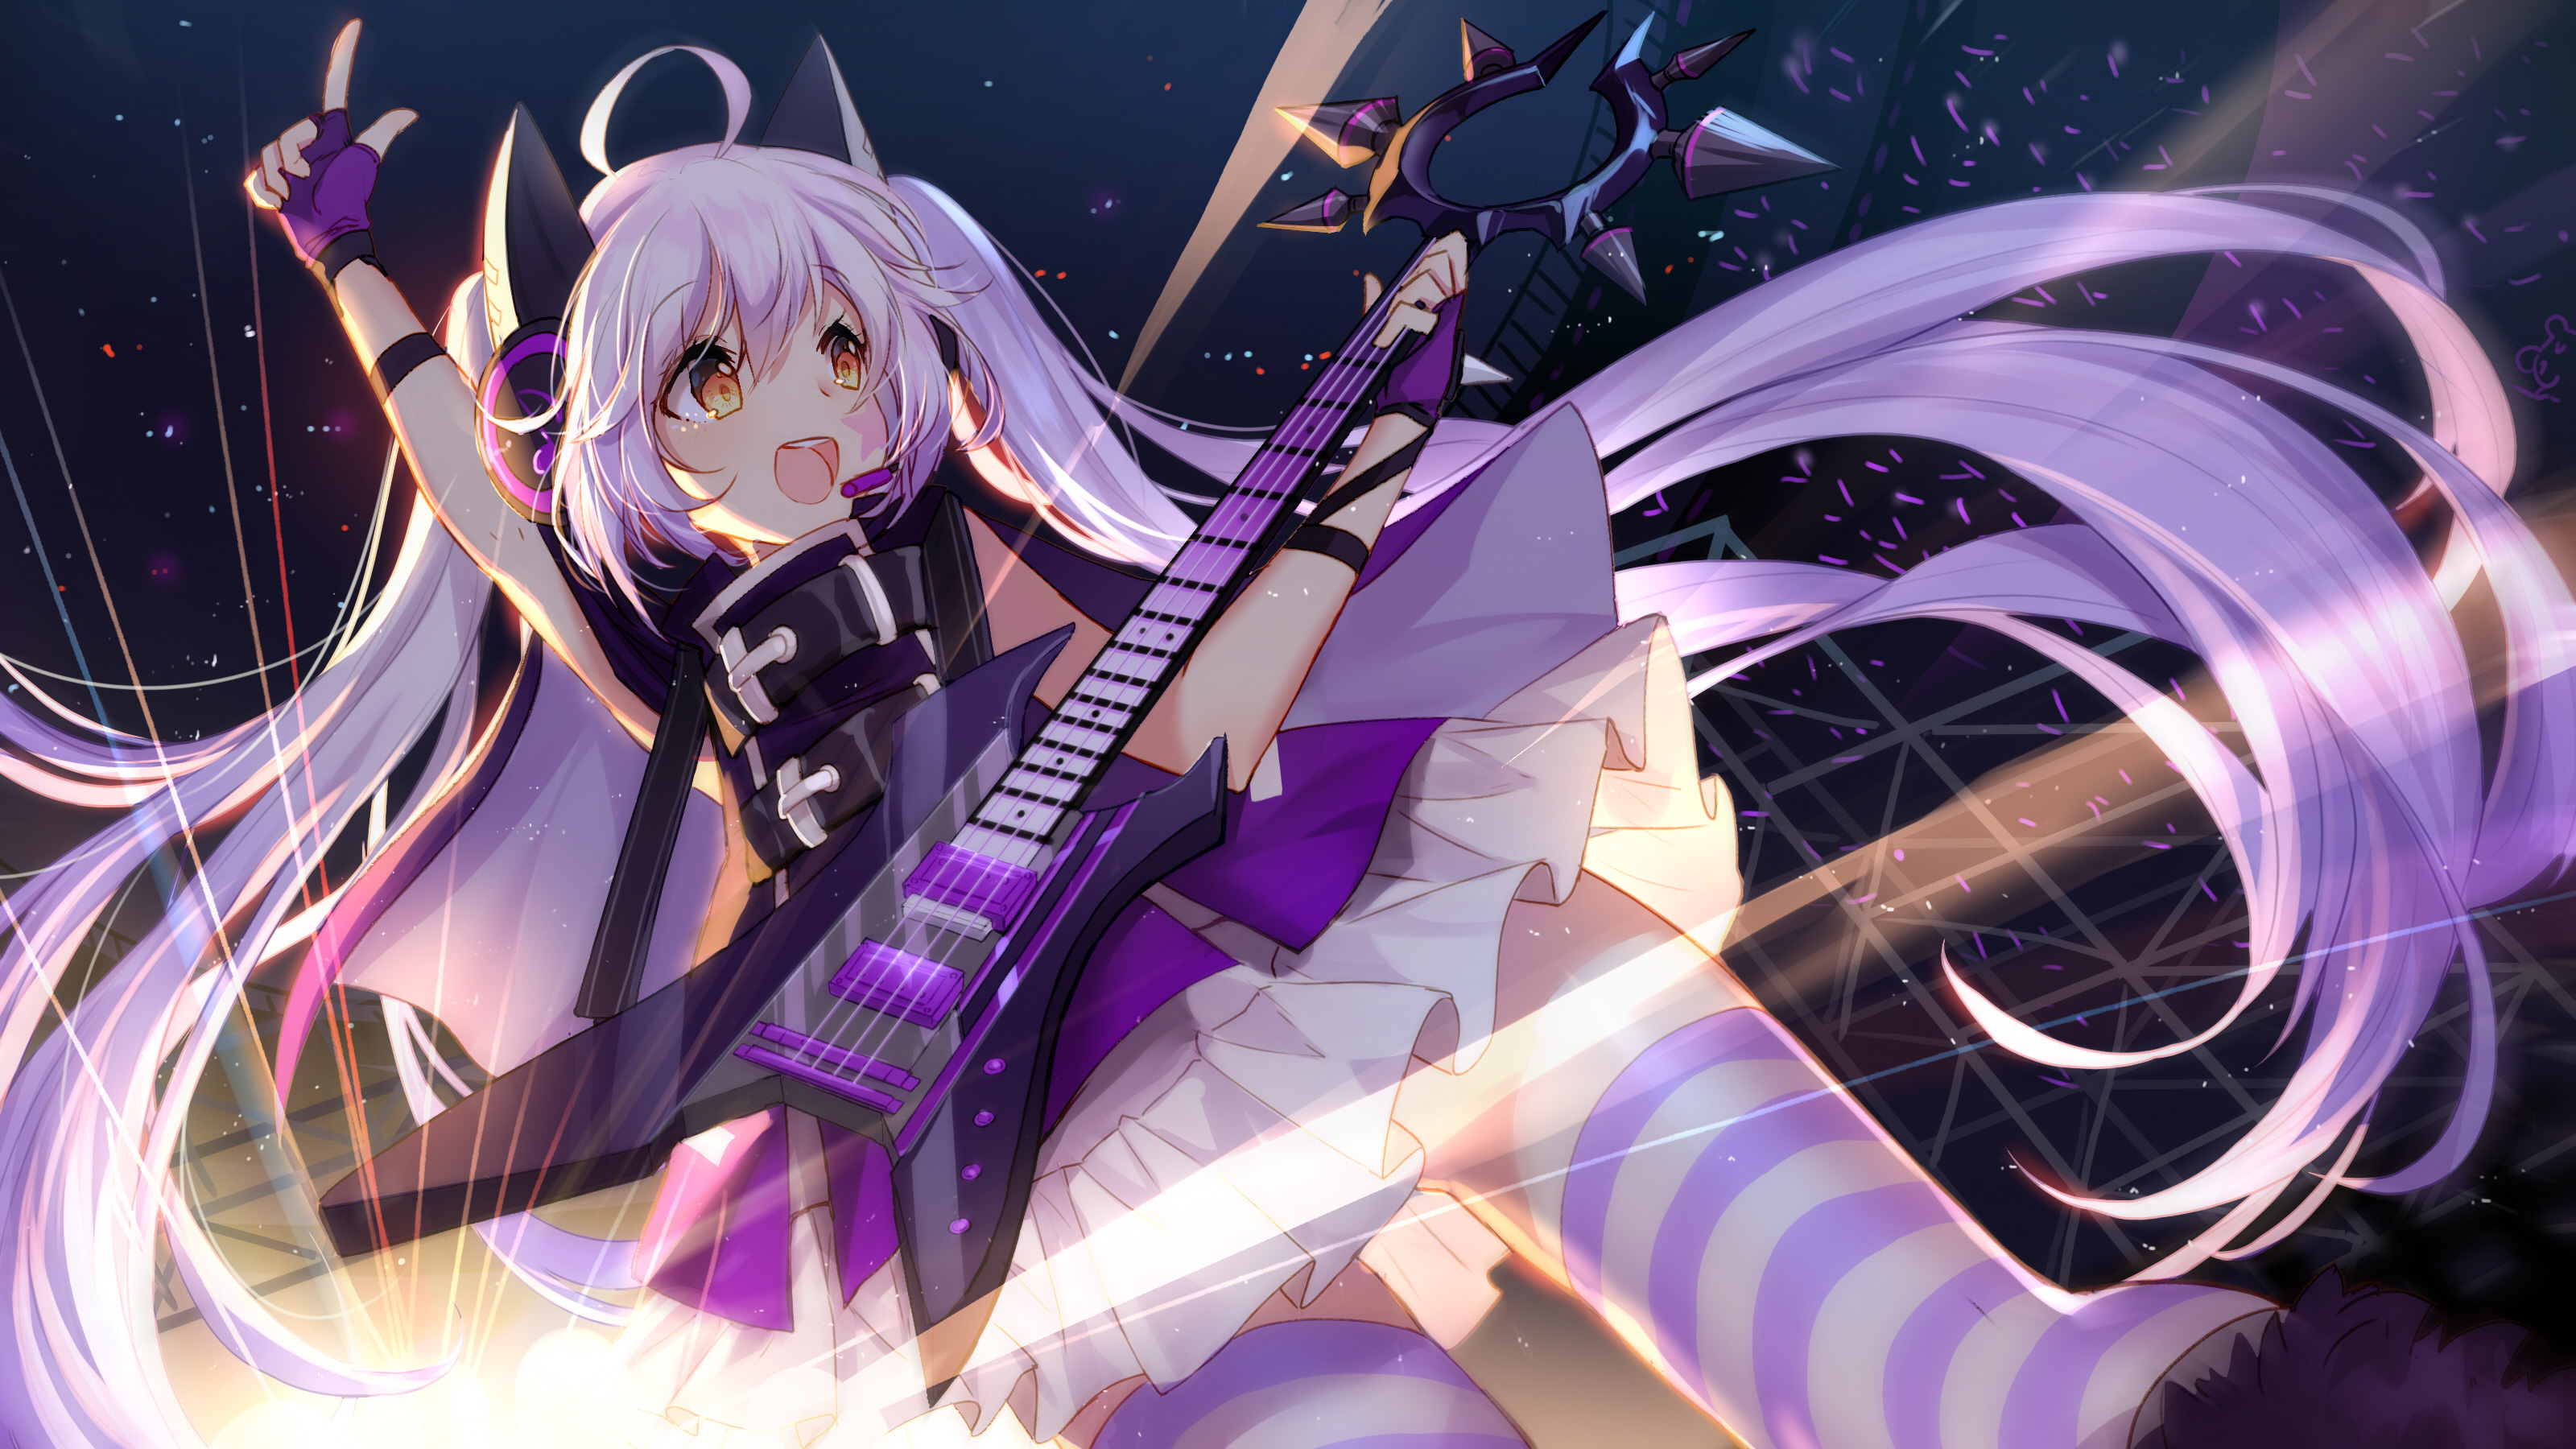 Anime Girl Concert 4k Hd Anime 4k Wallpapers Images Backgrounds Photos And Pictures